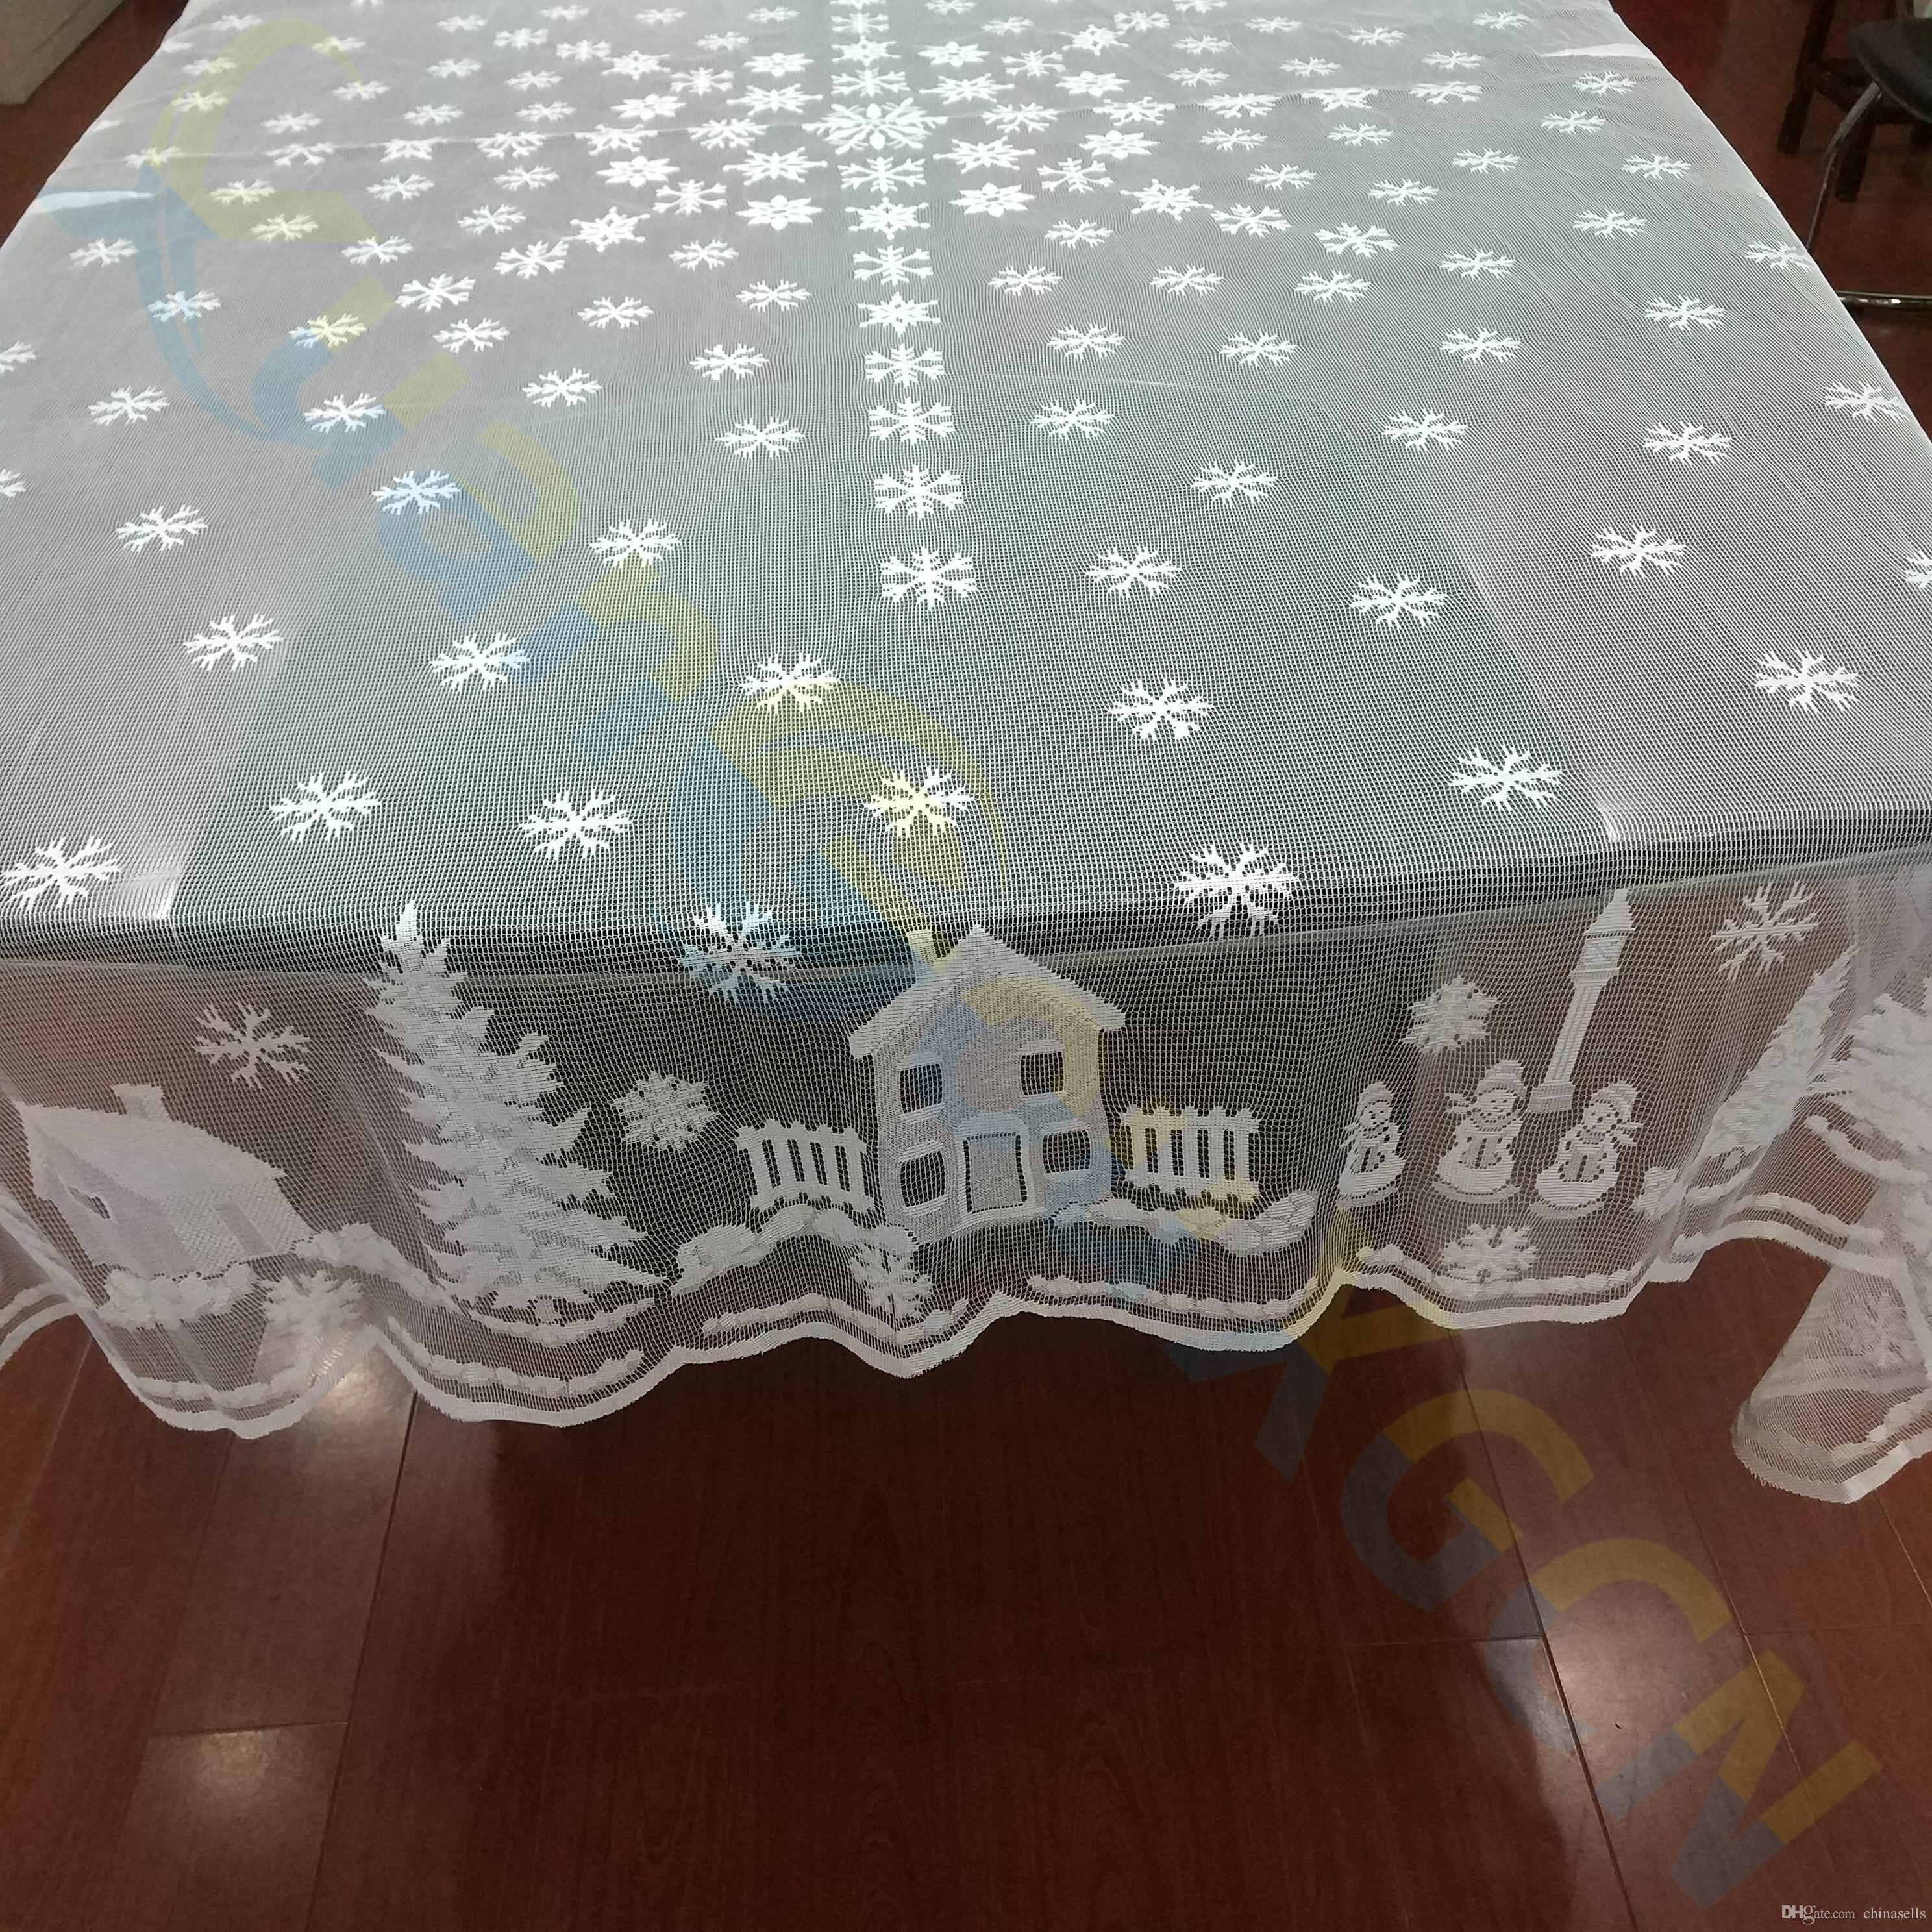 Xmas Ornaments home party Tablecloth Table cover cloth Table Décor lace Placemat Hotel bar dinner Christmas decoration